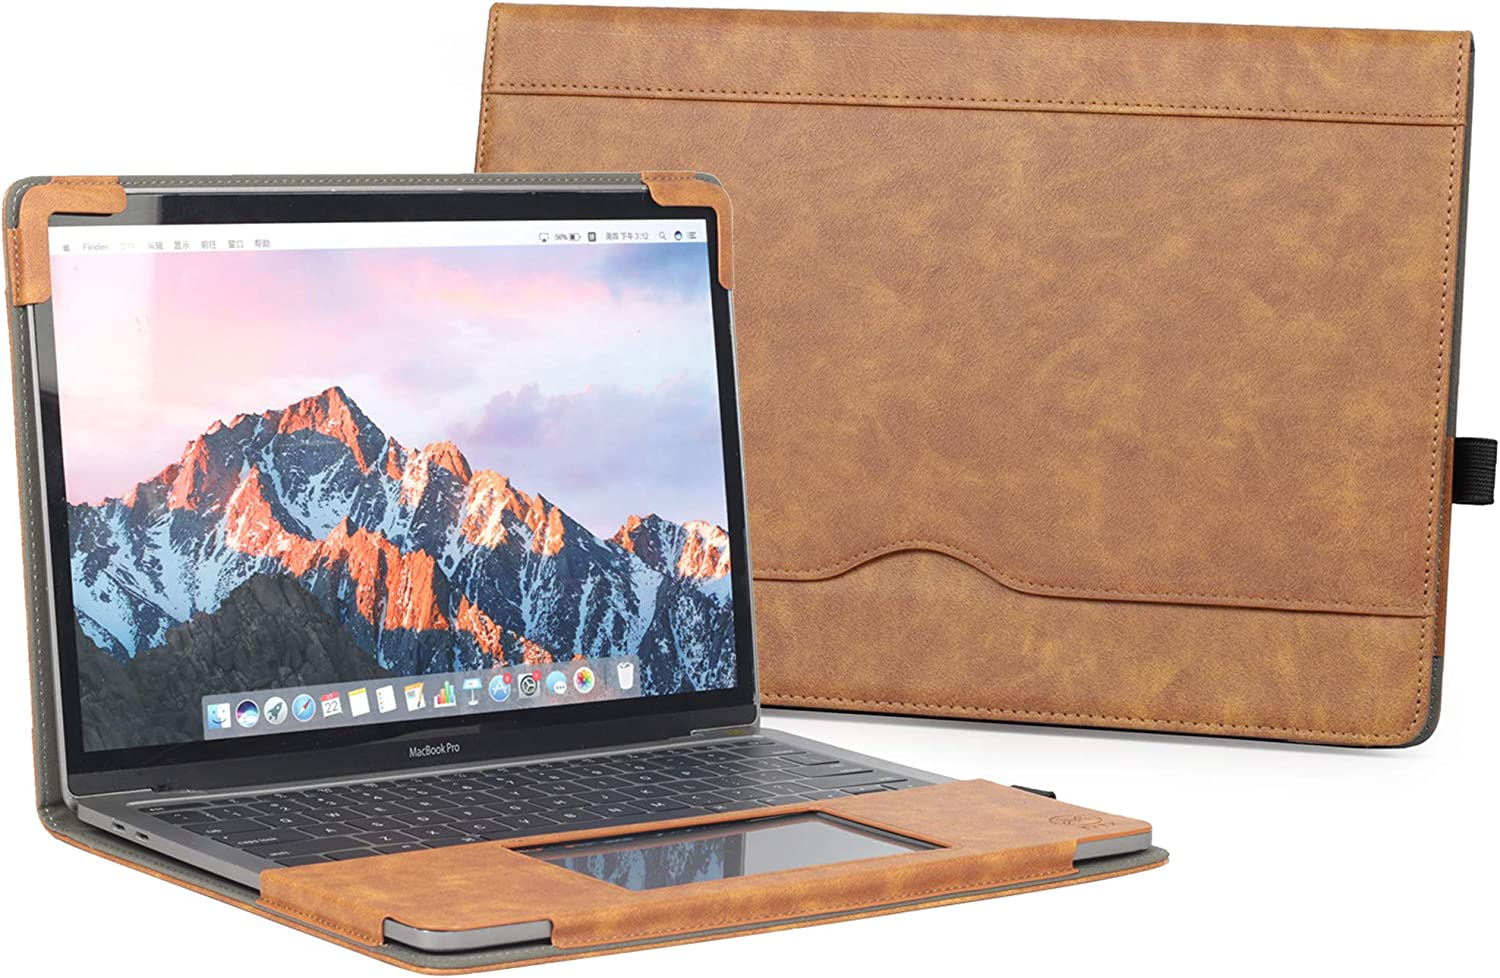 "TYTX MacBook Pro Leather Case 13 Inch 2016-2020 (A1989 A1706 A1708 A2159 A2289 A2251) Laptop Sleeve Protective Folio Book Cover (New MacBook Pro 13"", Brown)"